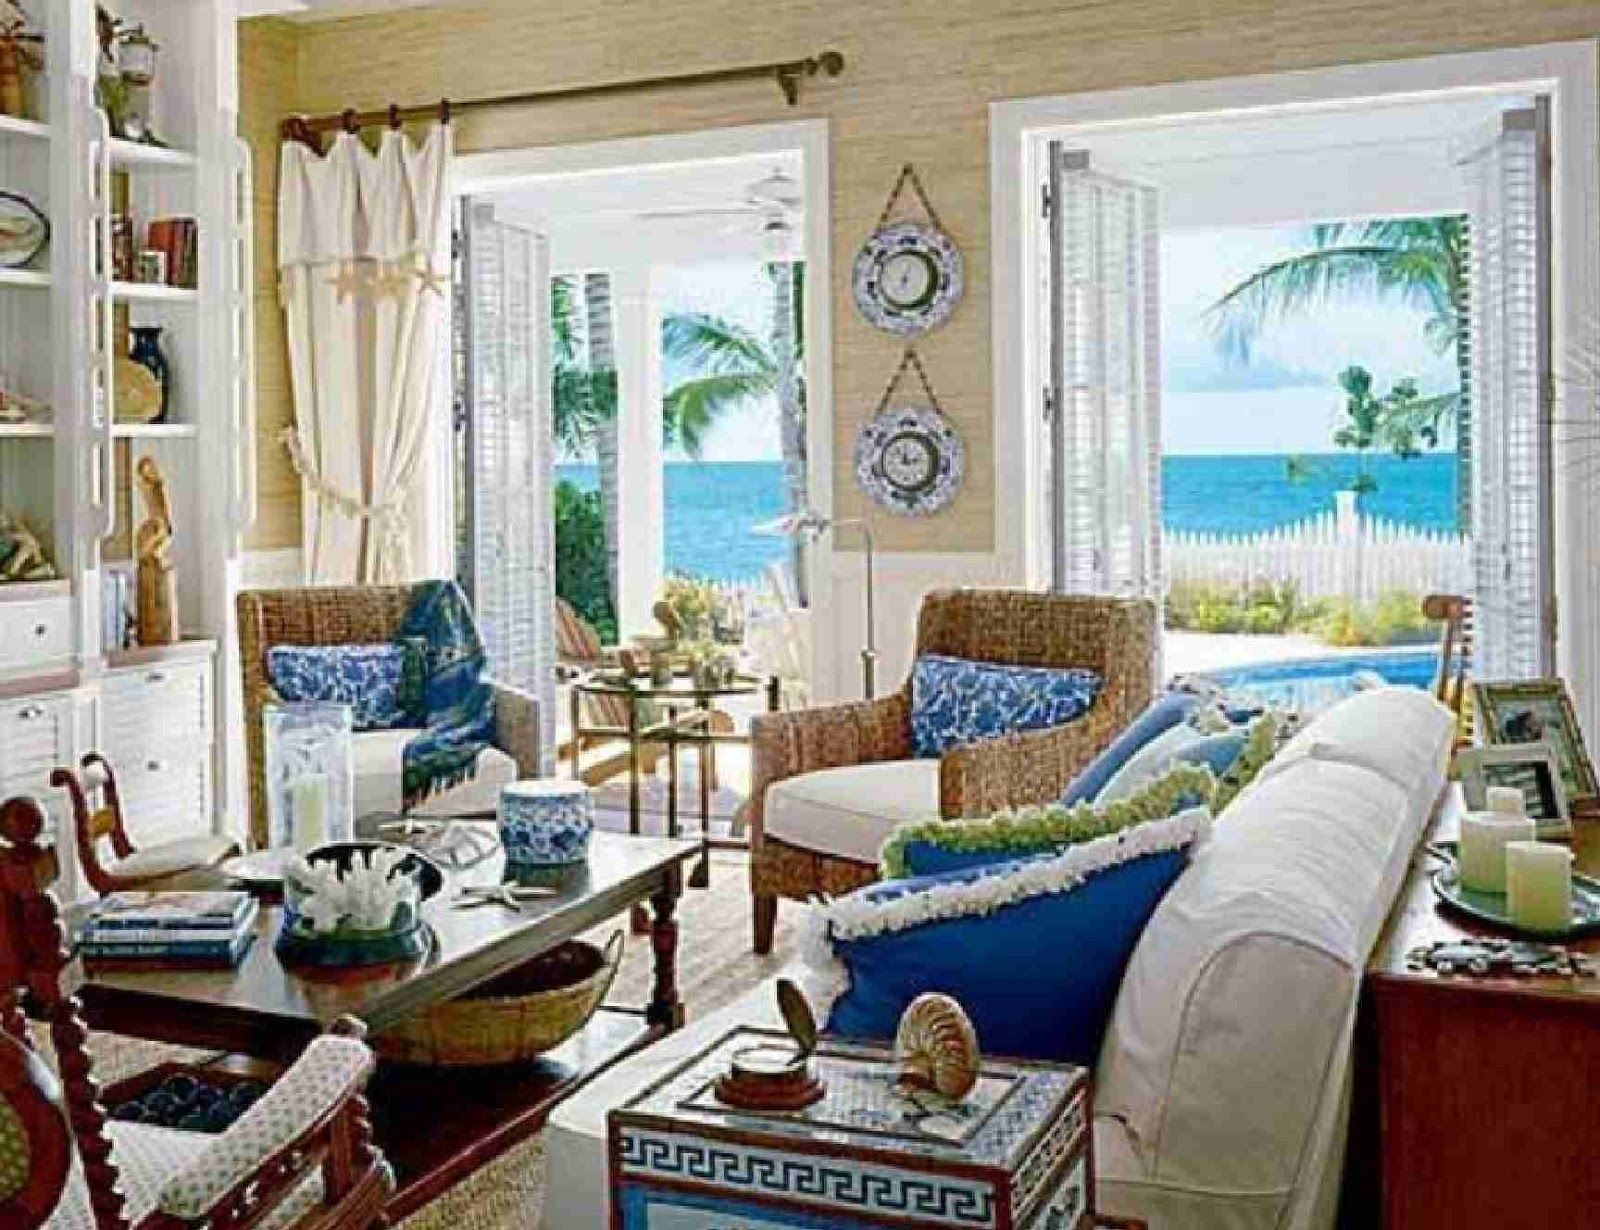 Pin On Florida Home Decorating Ideas #tropical #living #room #decorations